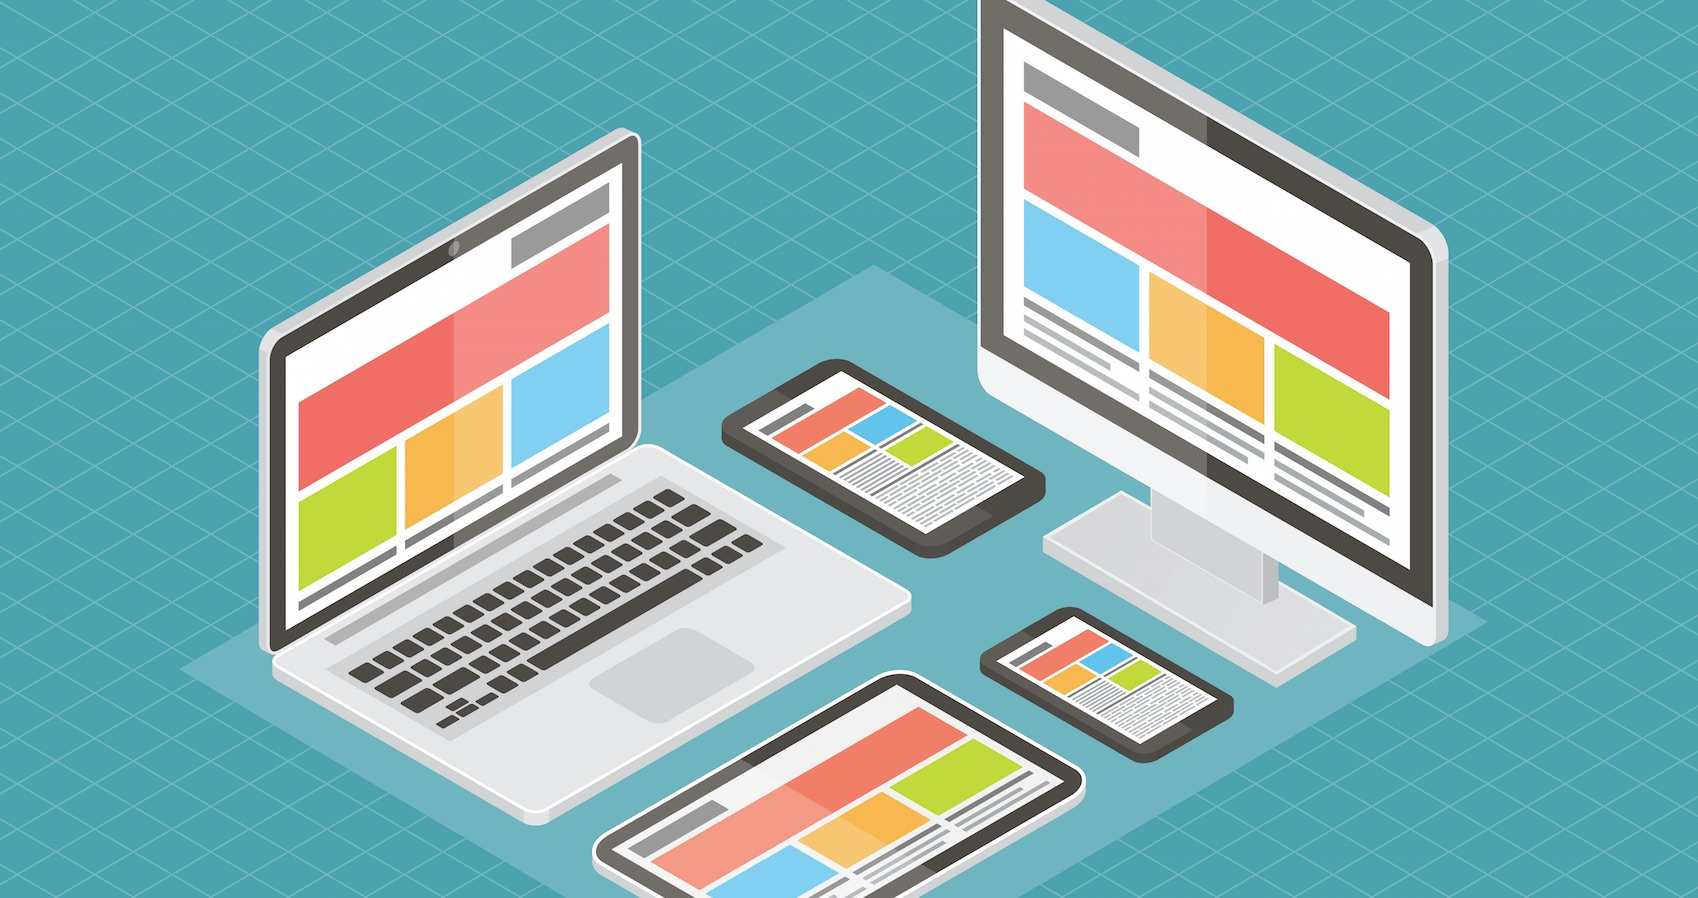 3 Things You Need to Fix in Your Website That We Swear You Don't Even Know